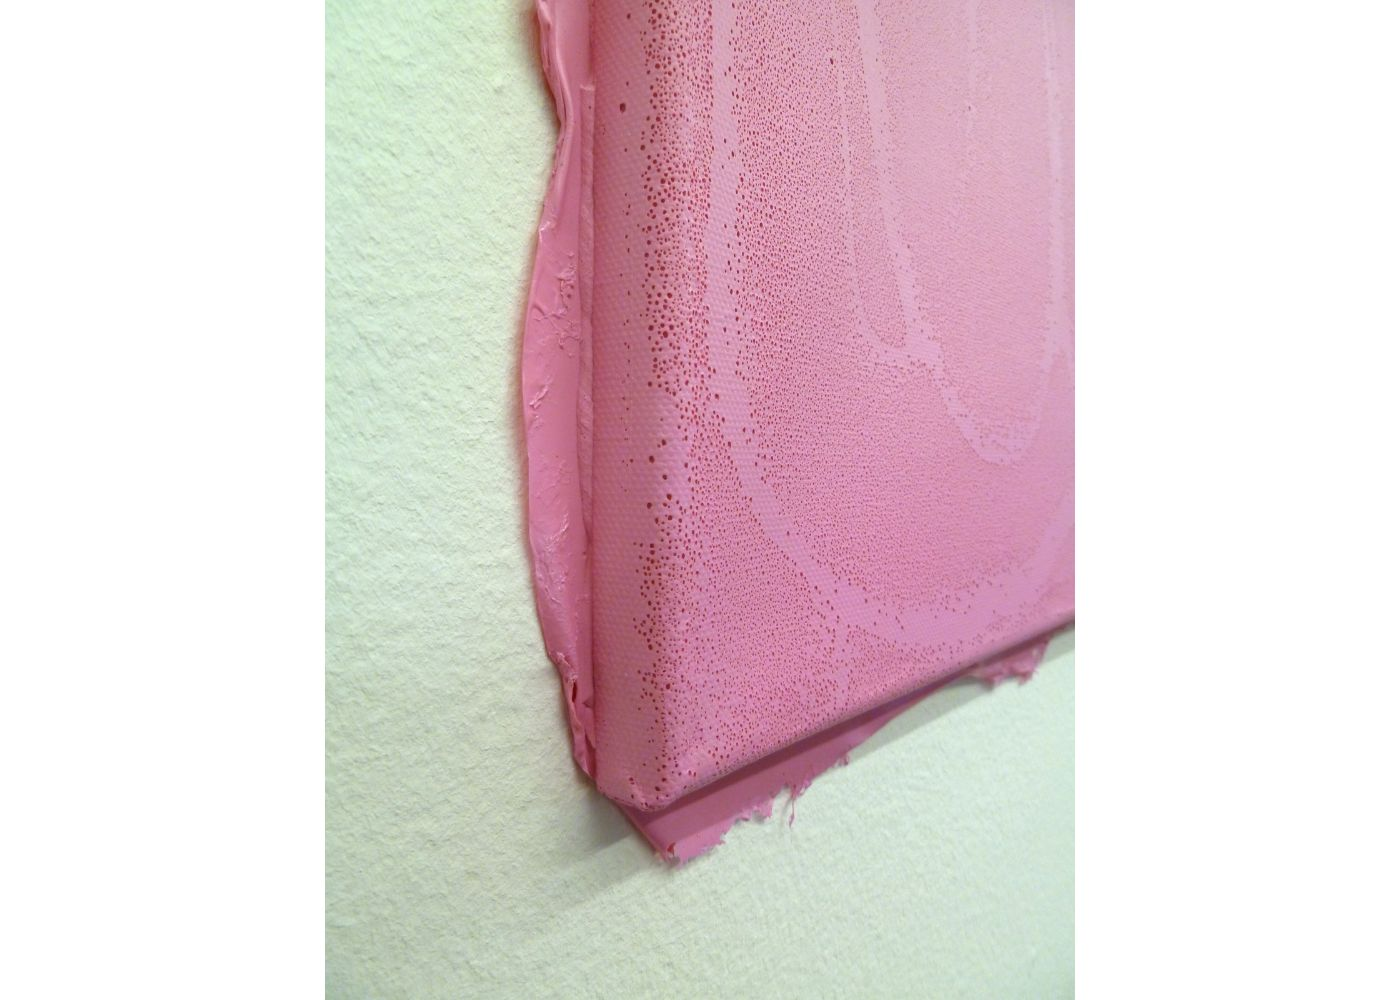 Detail, Color for Paint, pink